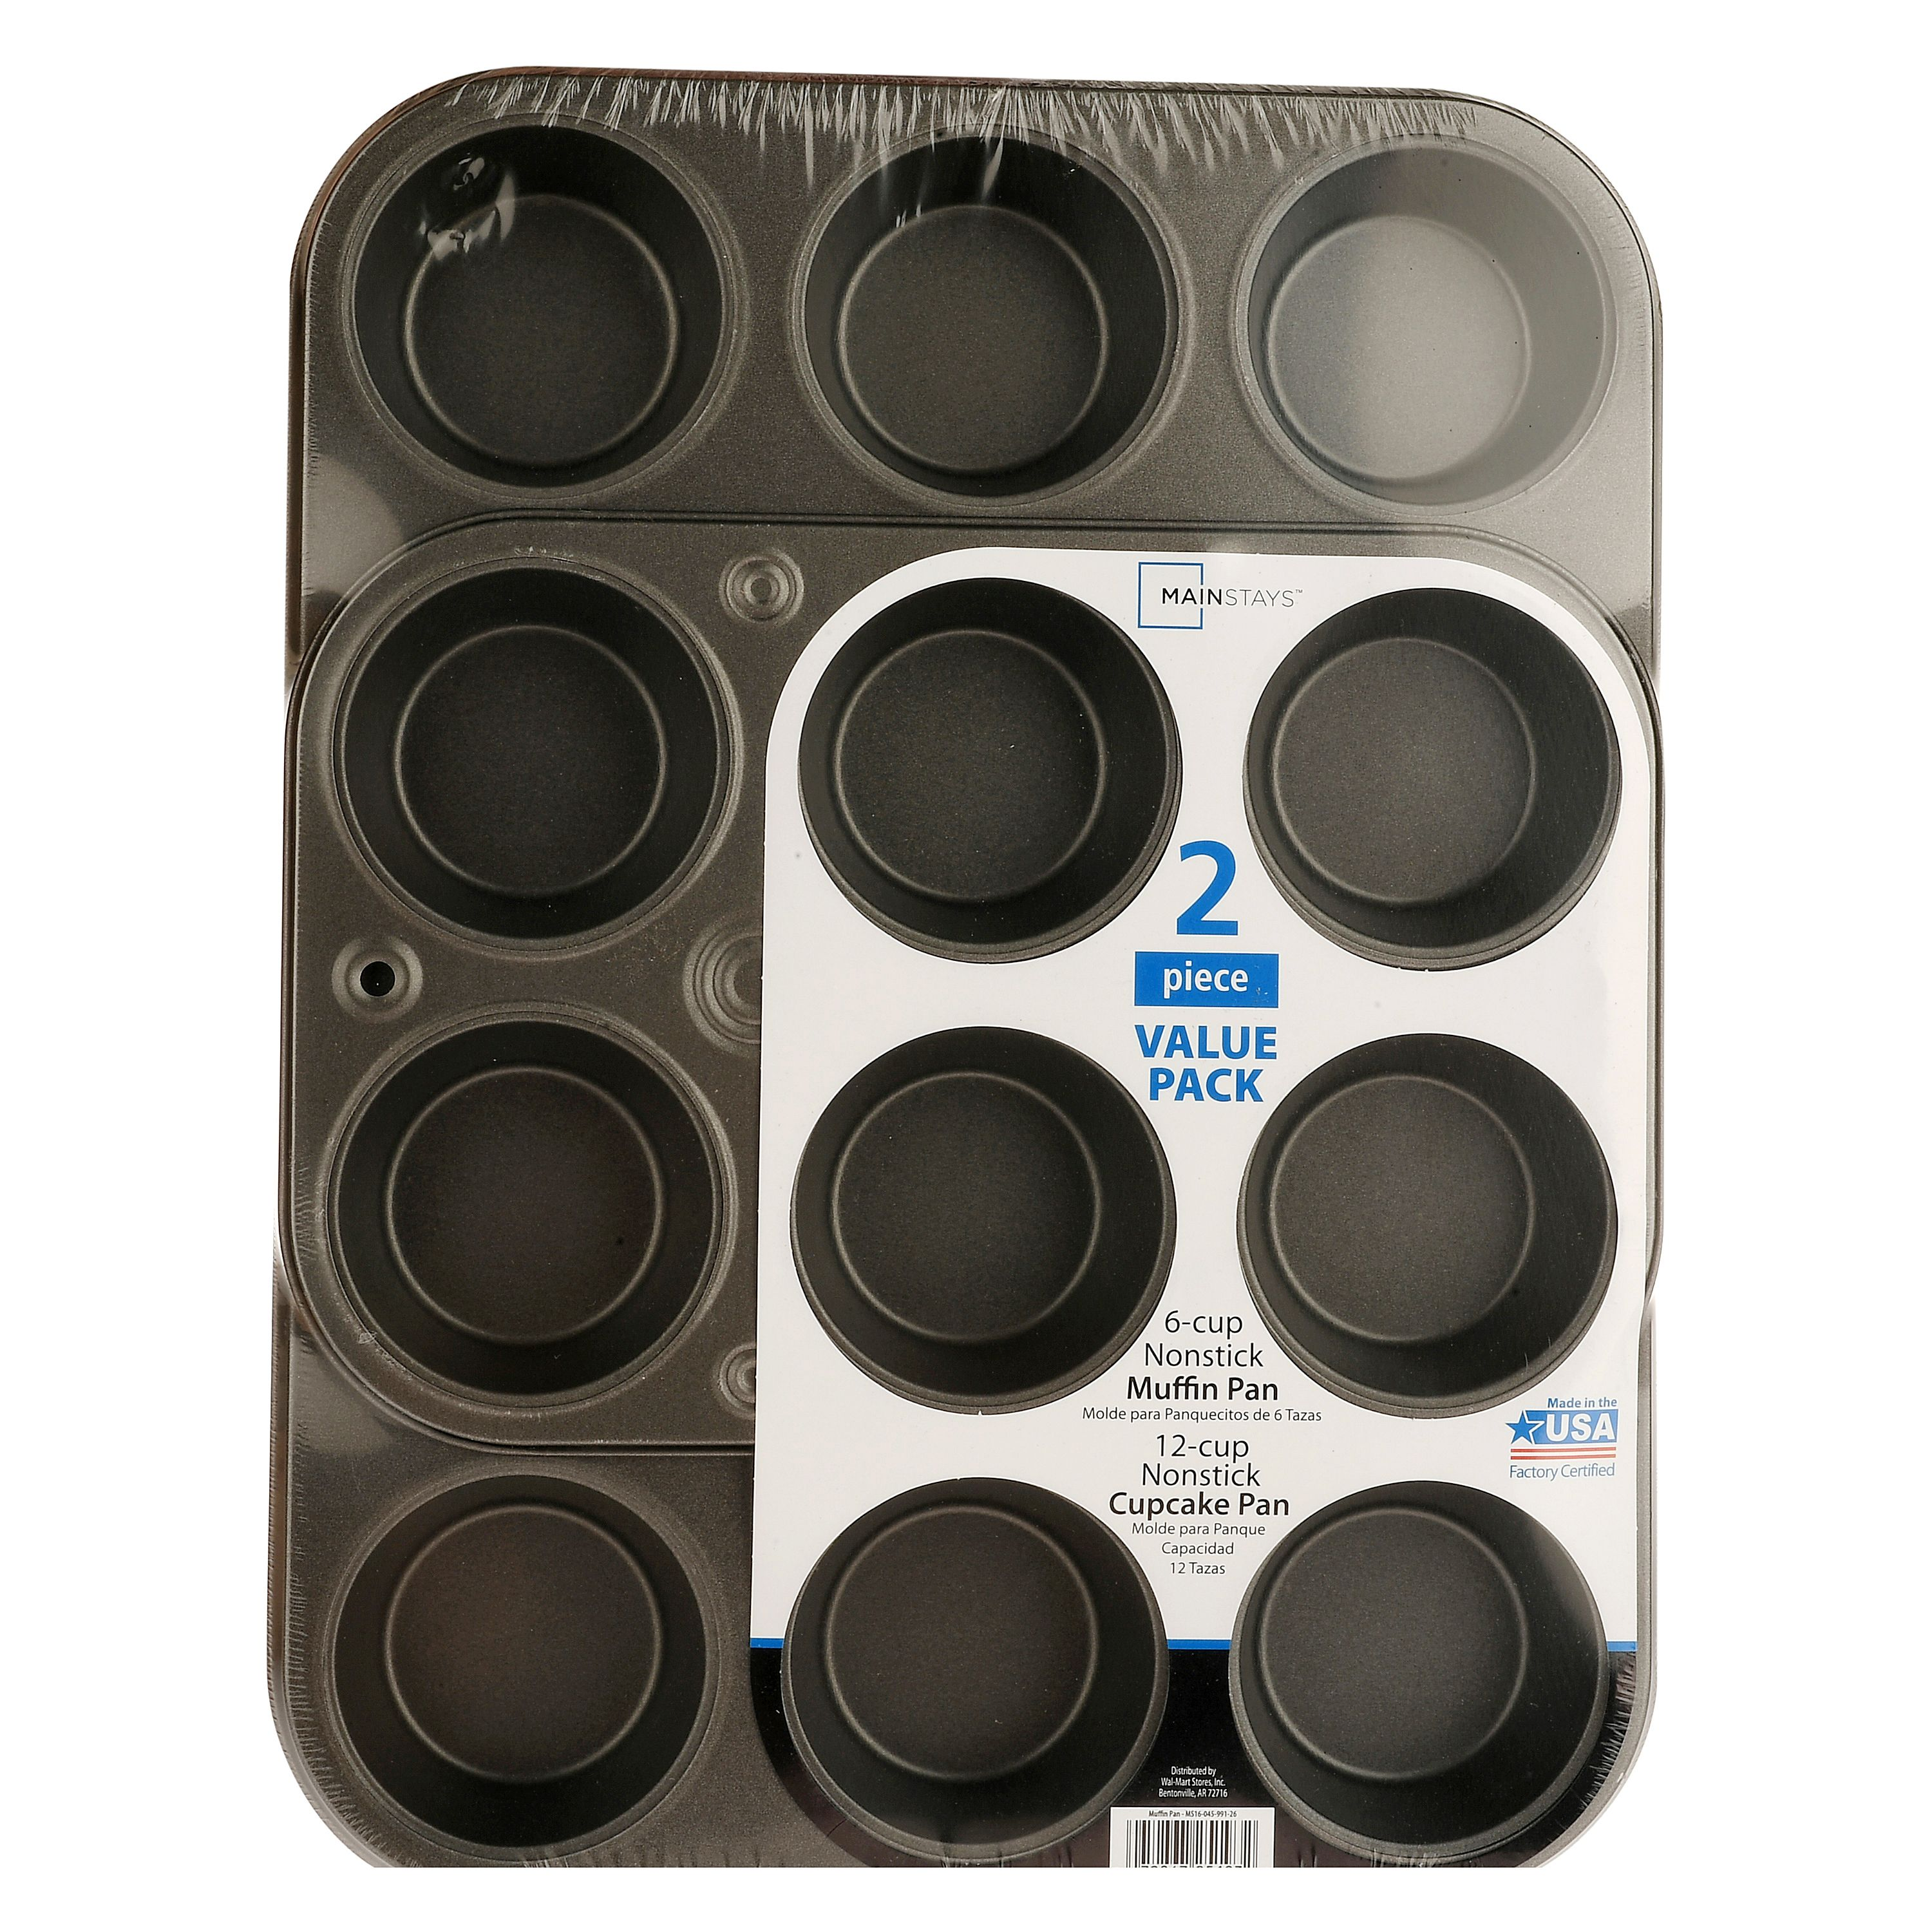 Mainstays, 2 Piece Nonstick Muffin and Cupcake Pans